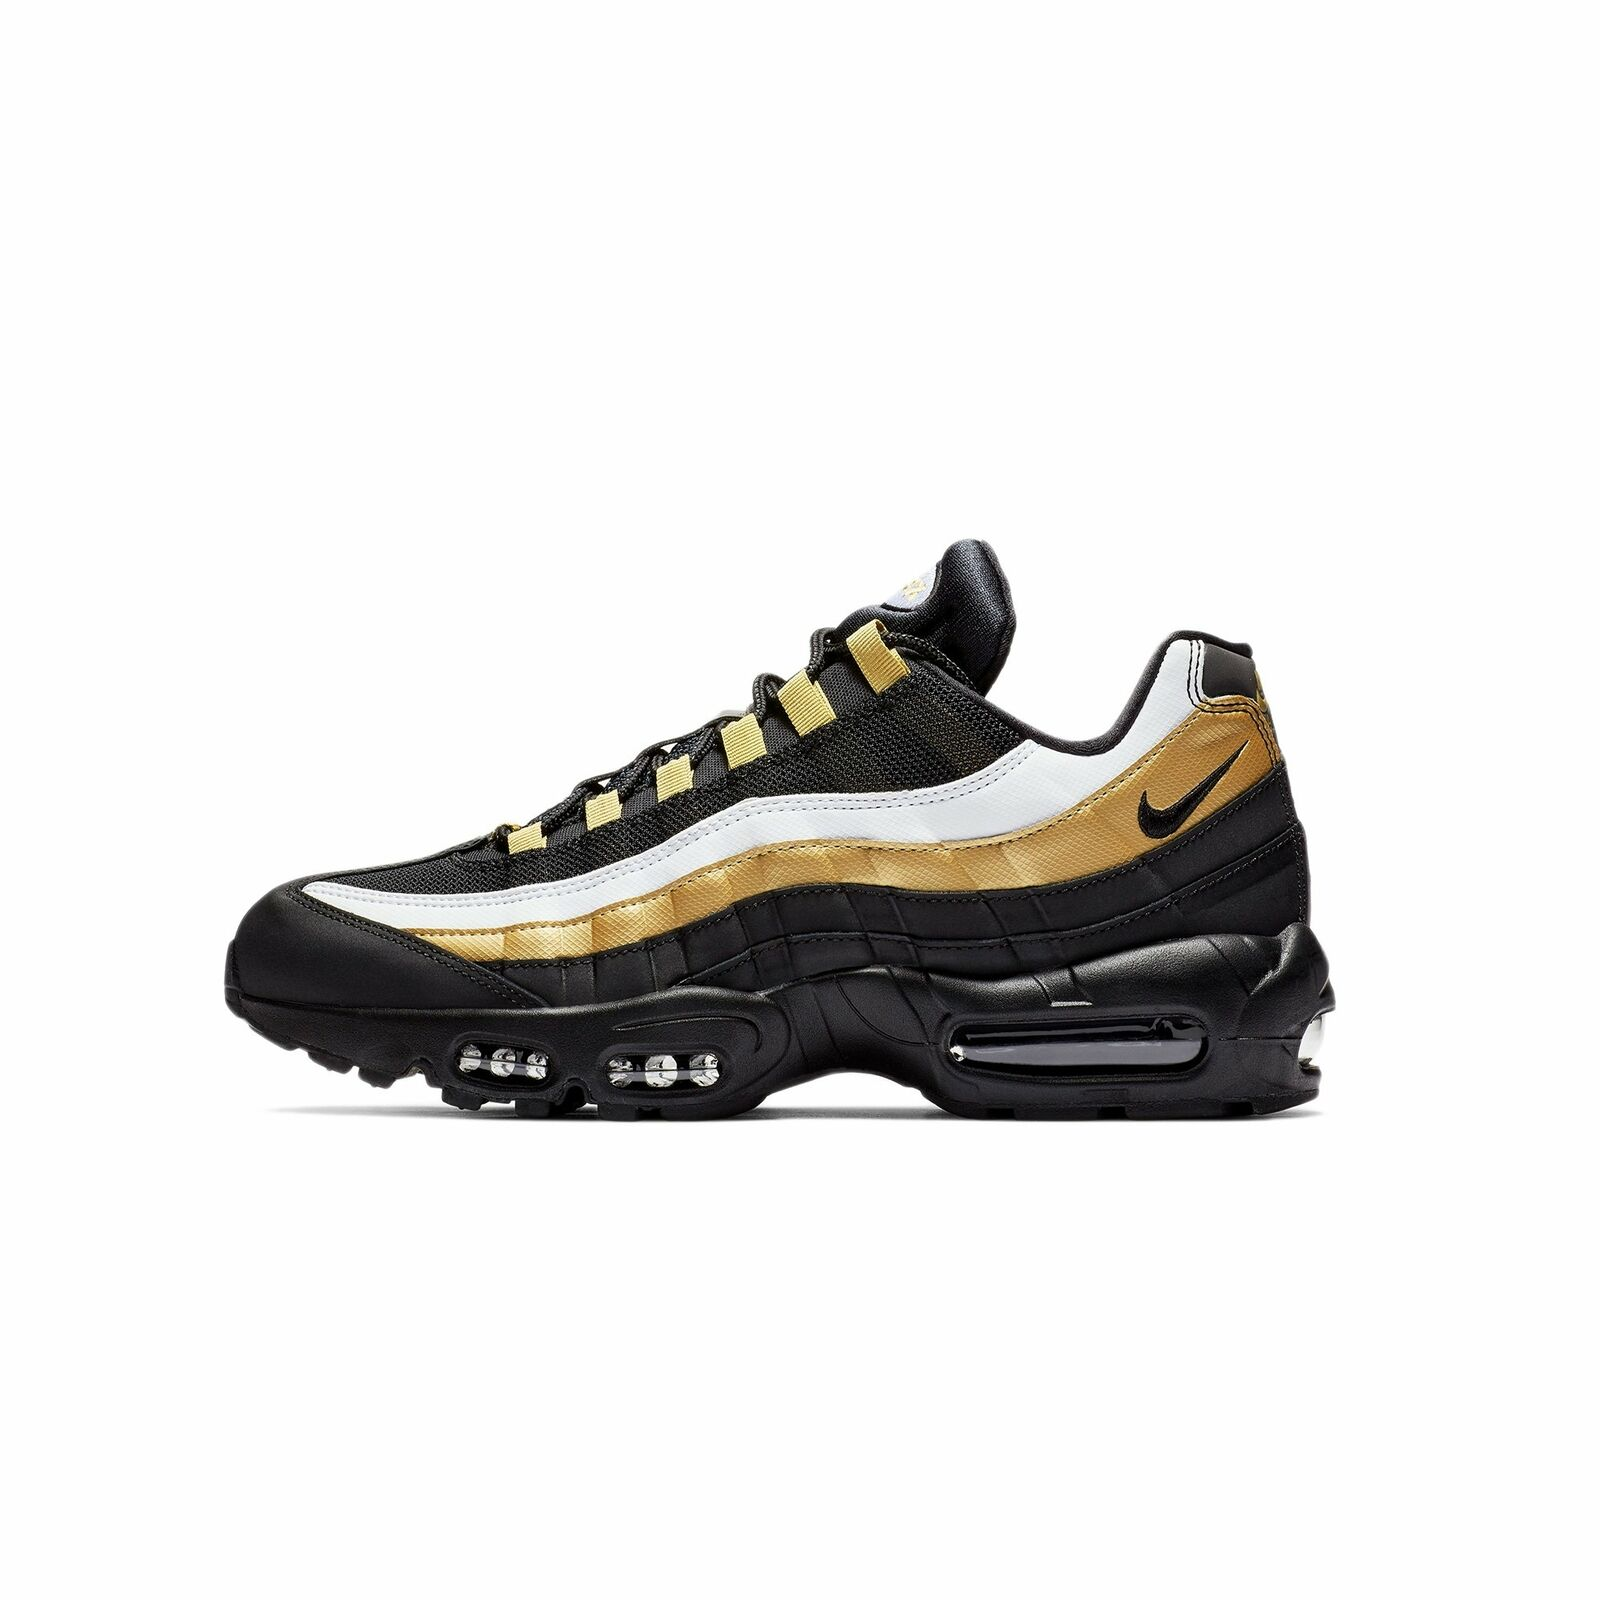 Nike Air Max 95 OG Black gold AT2865-002 Size 7.5 US